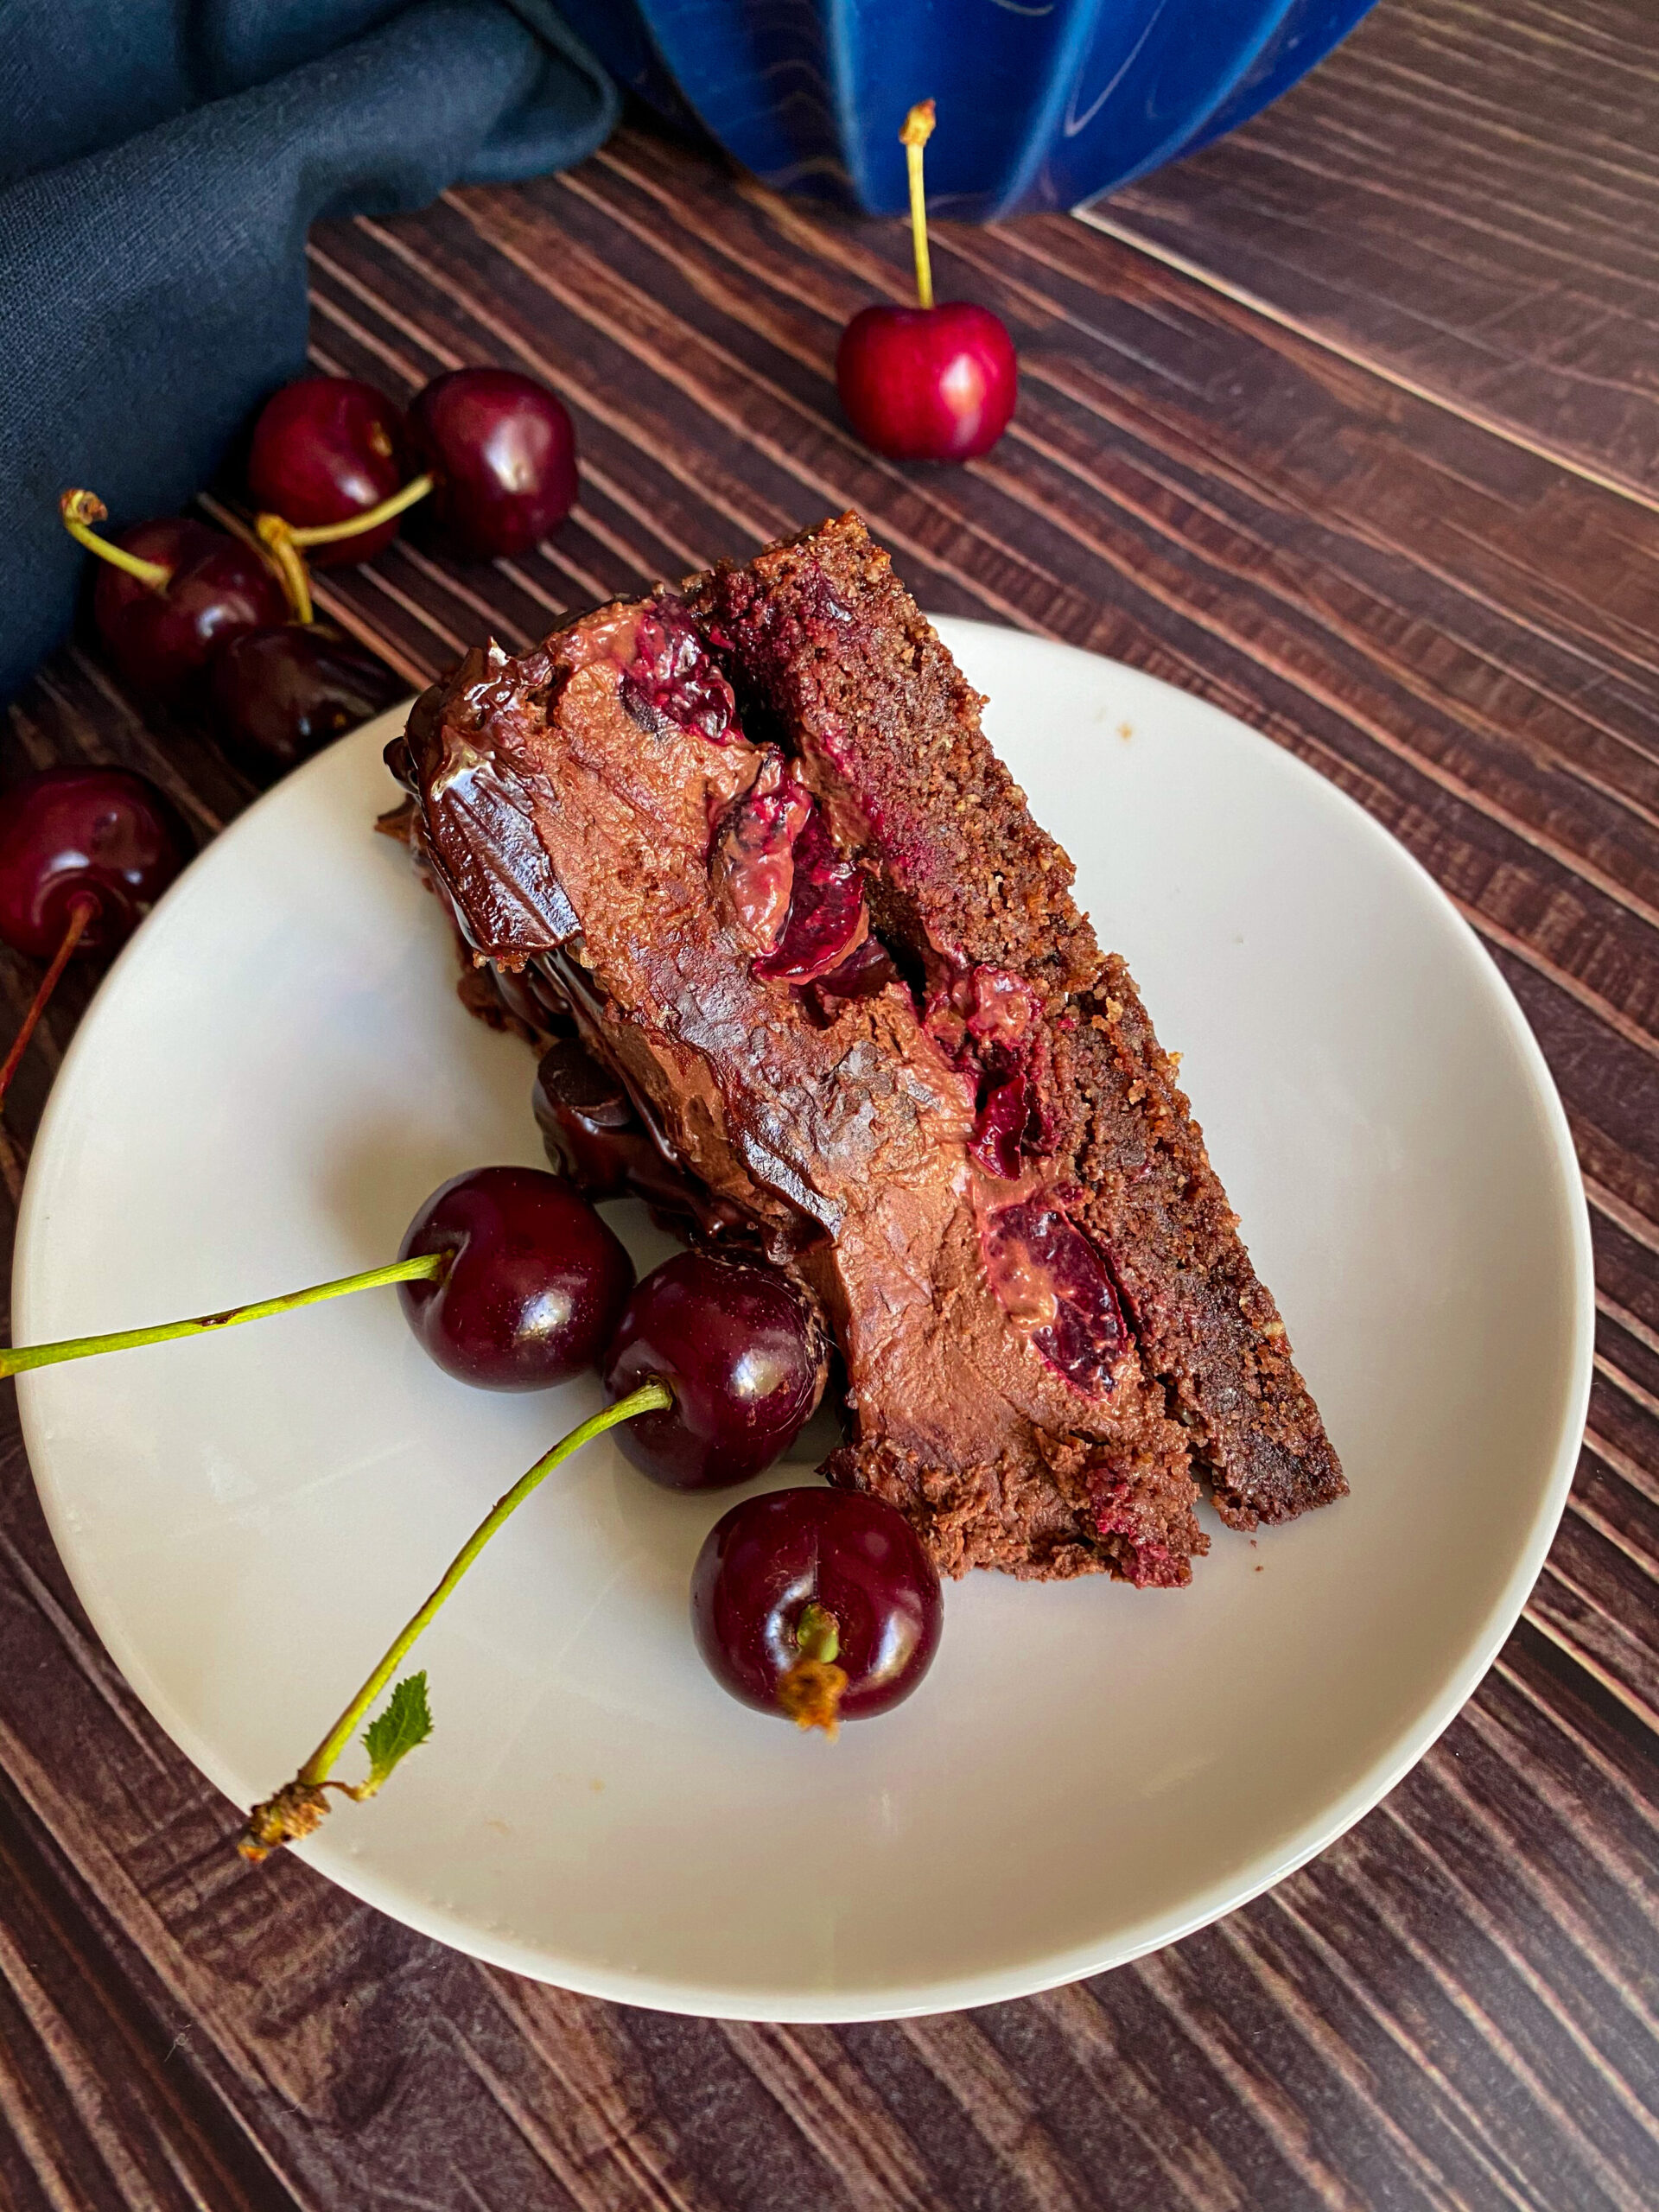 Picture of a slice of keto cherry chocolate cheesecake